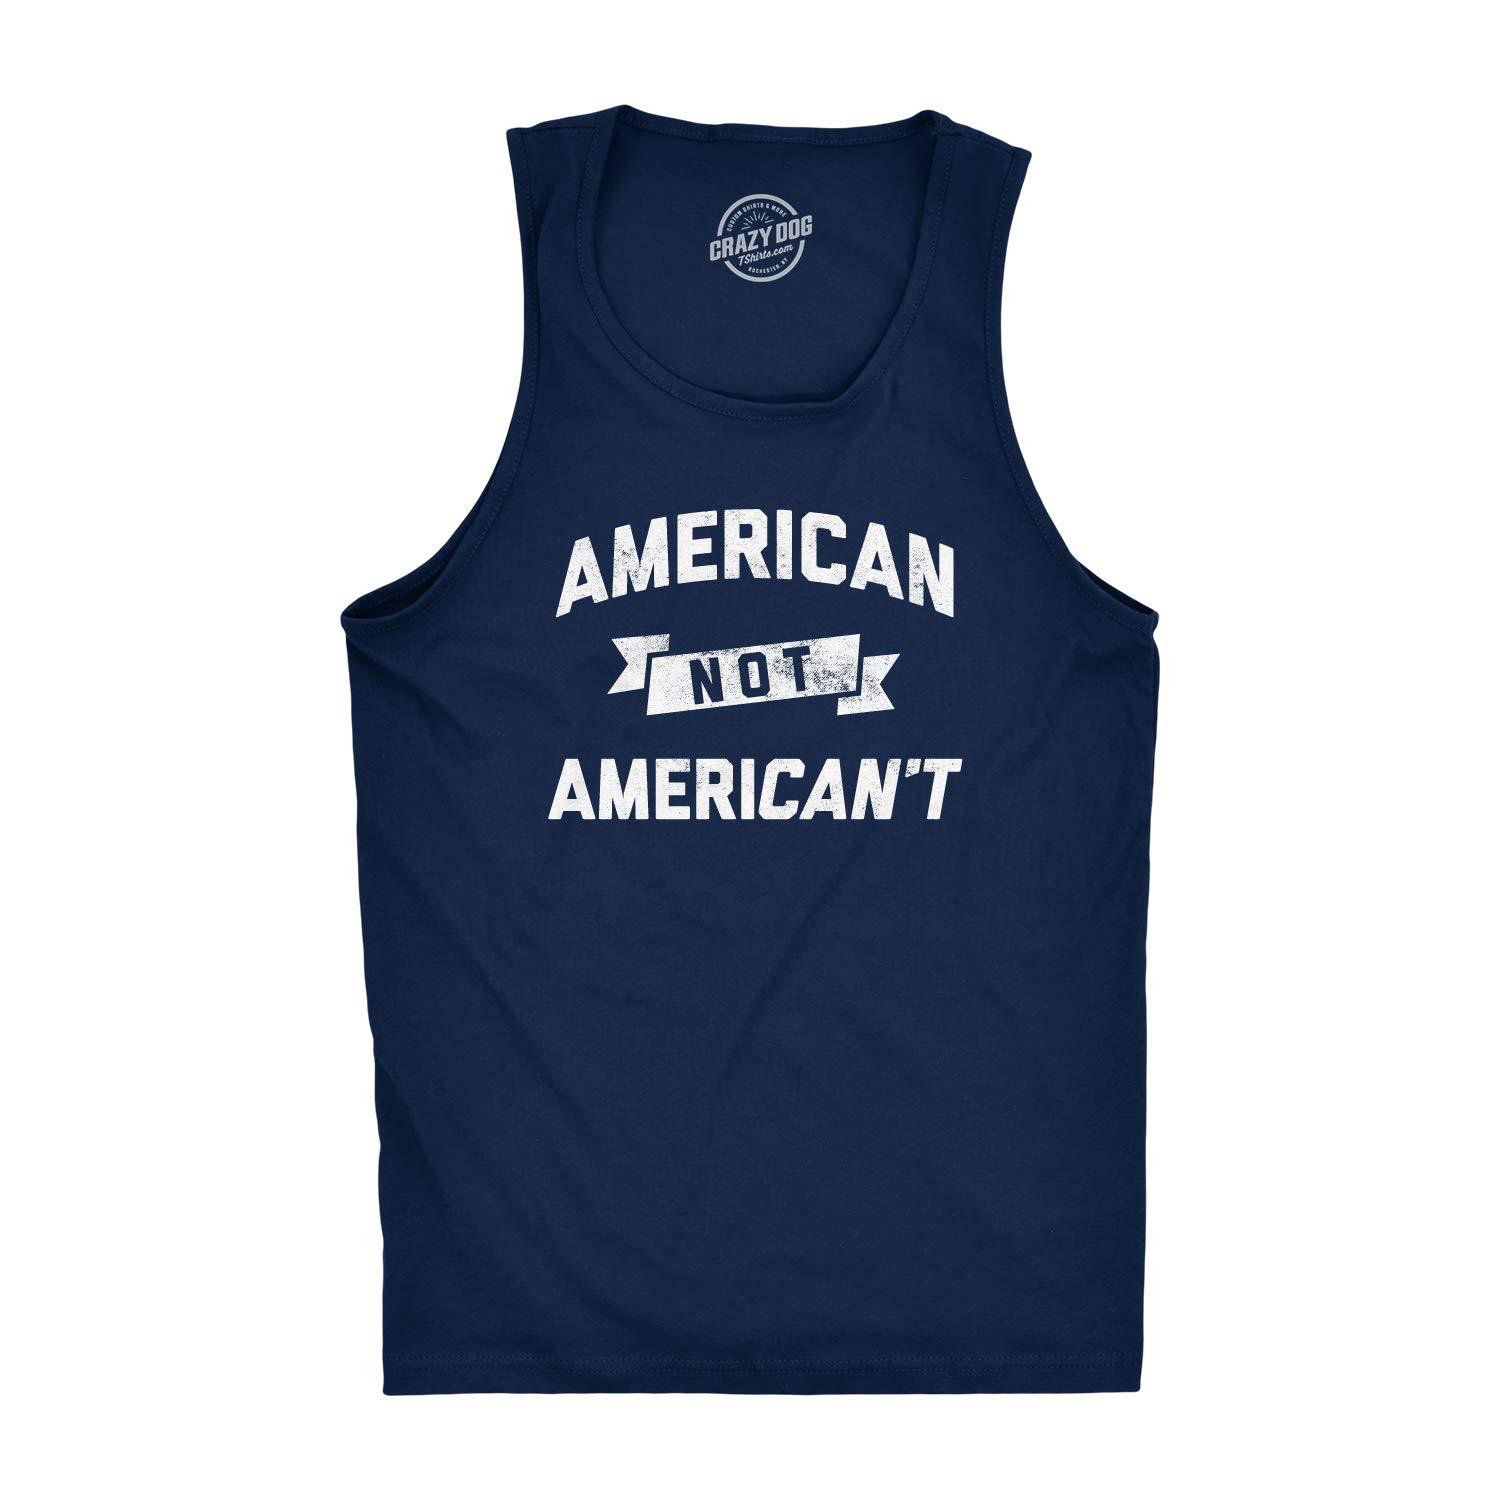 Crazy Dog Tshirts Mens Fitness Tank American Not Americant Tanktop Funny USA Pride 4th of July Shirt